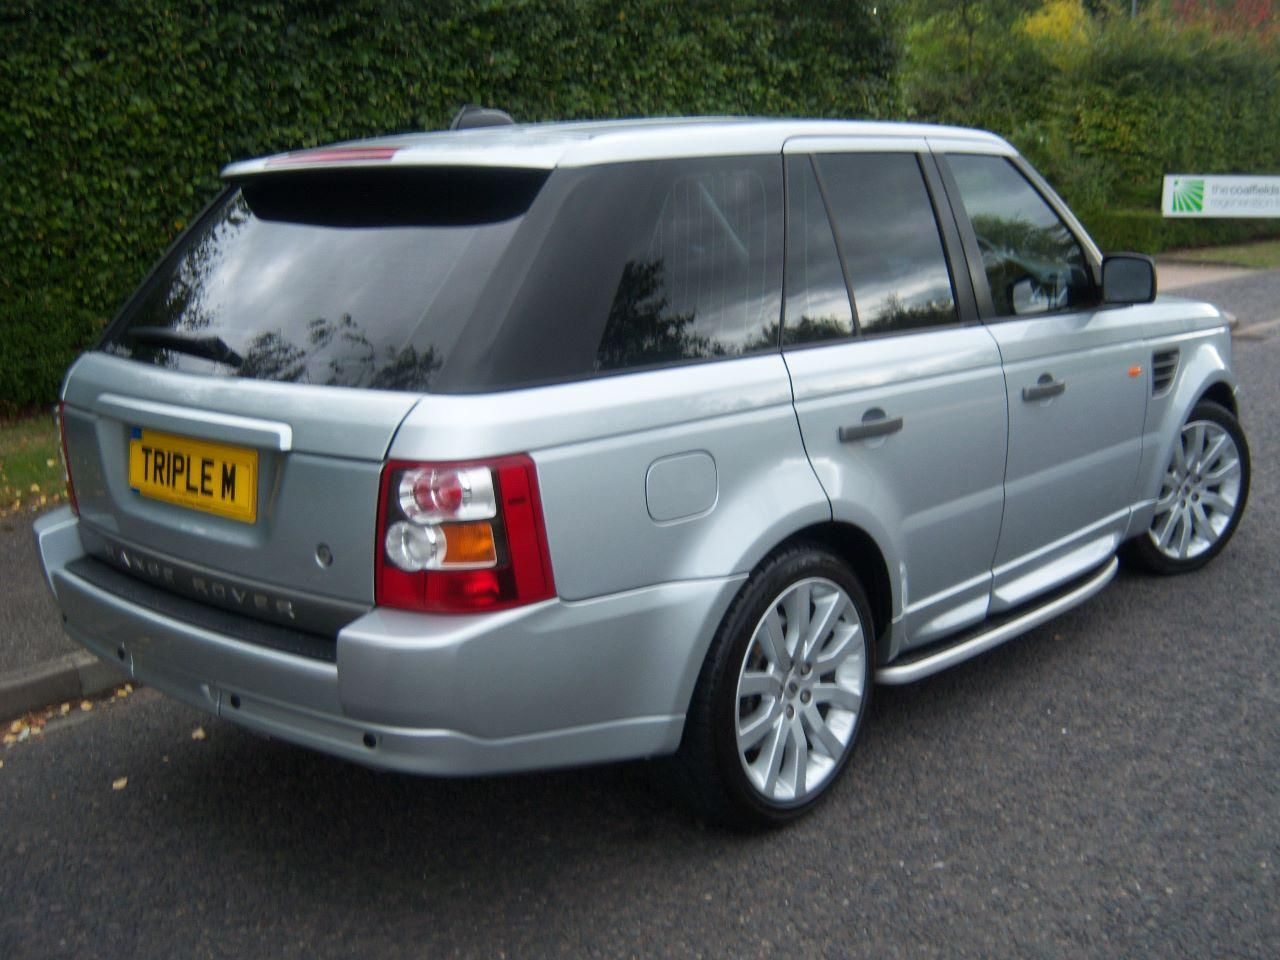 2006 range rover sport 2 7 tdv6 hse 5 door auto estate. Black Bedroom Furniture Sets. Home Design Ideas